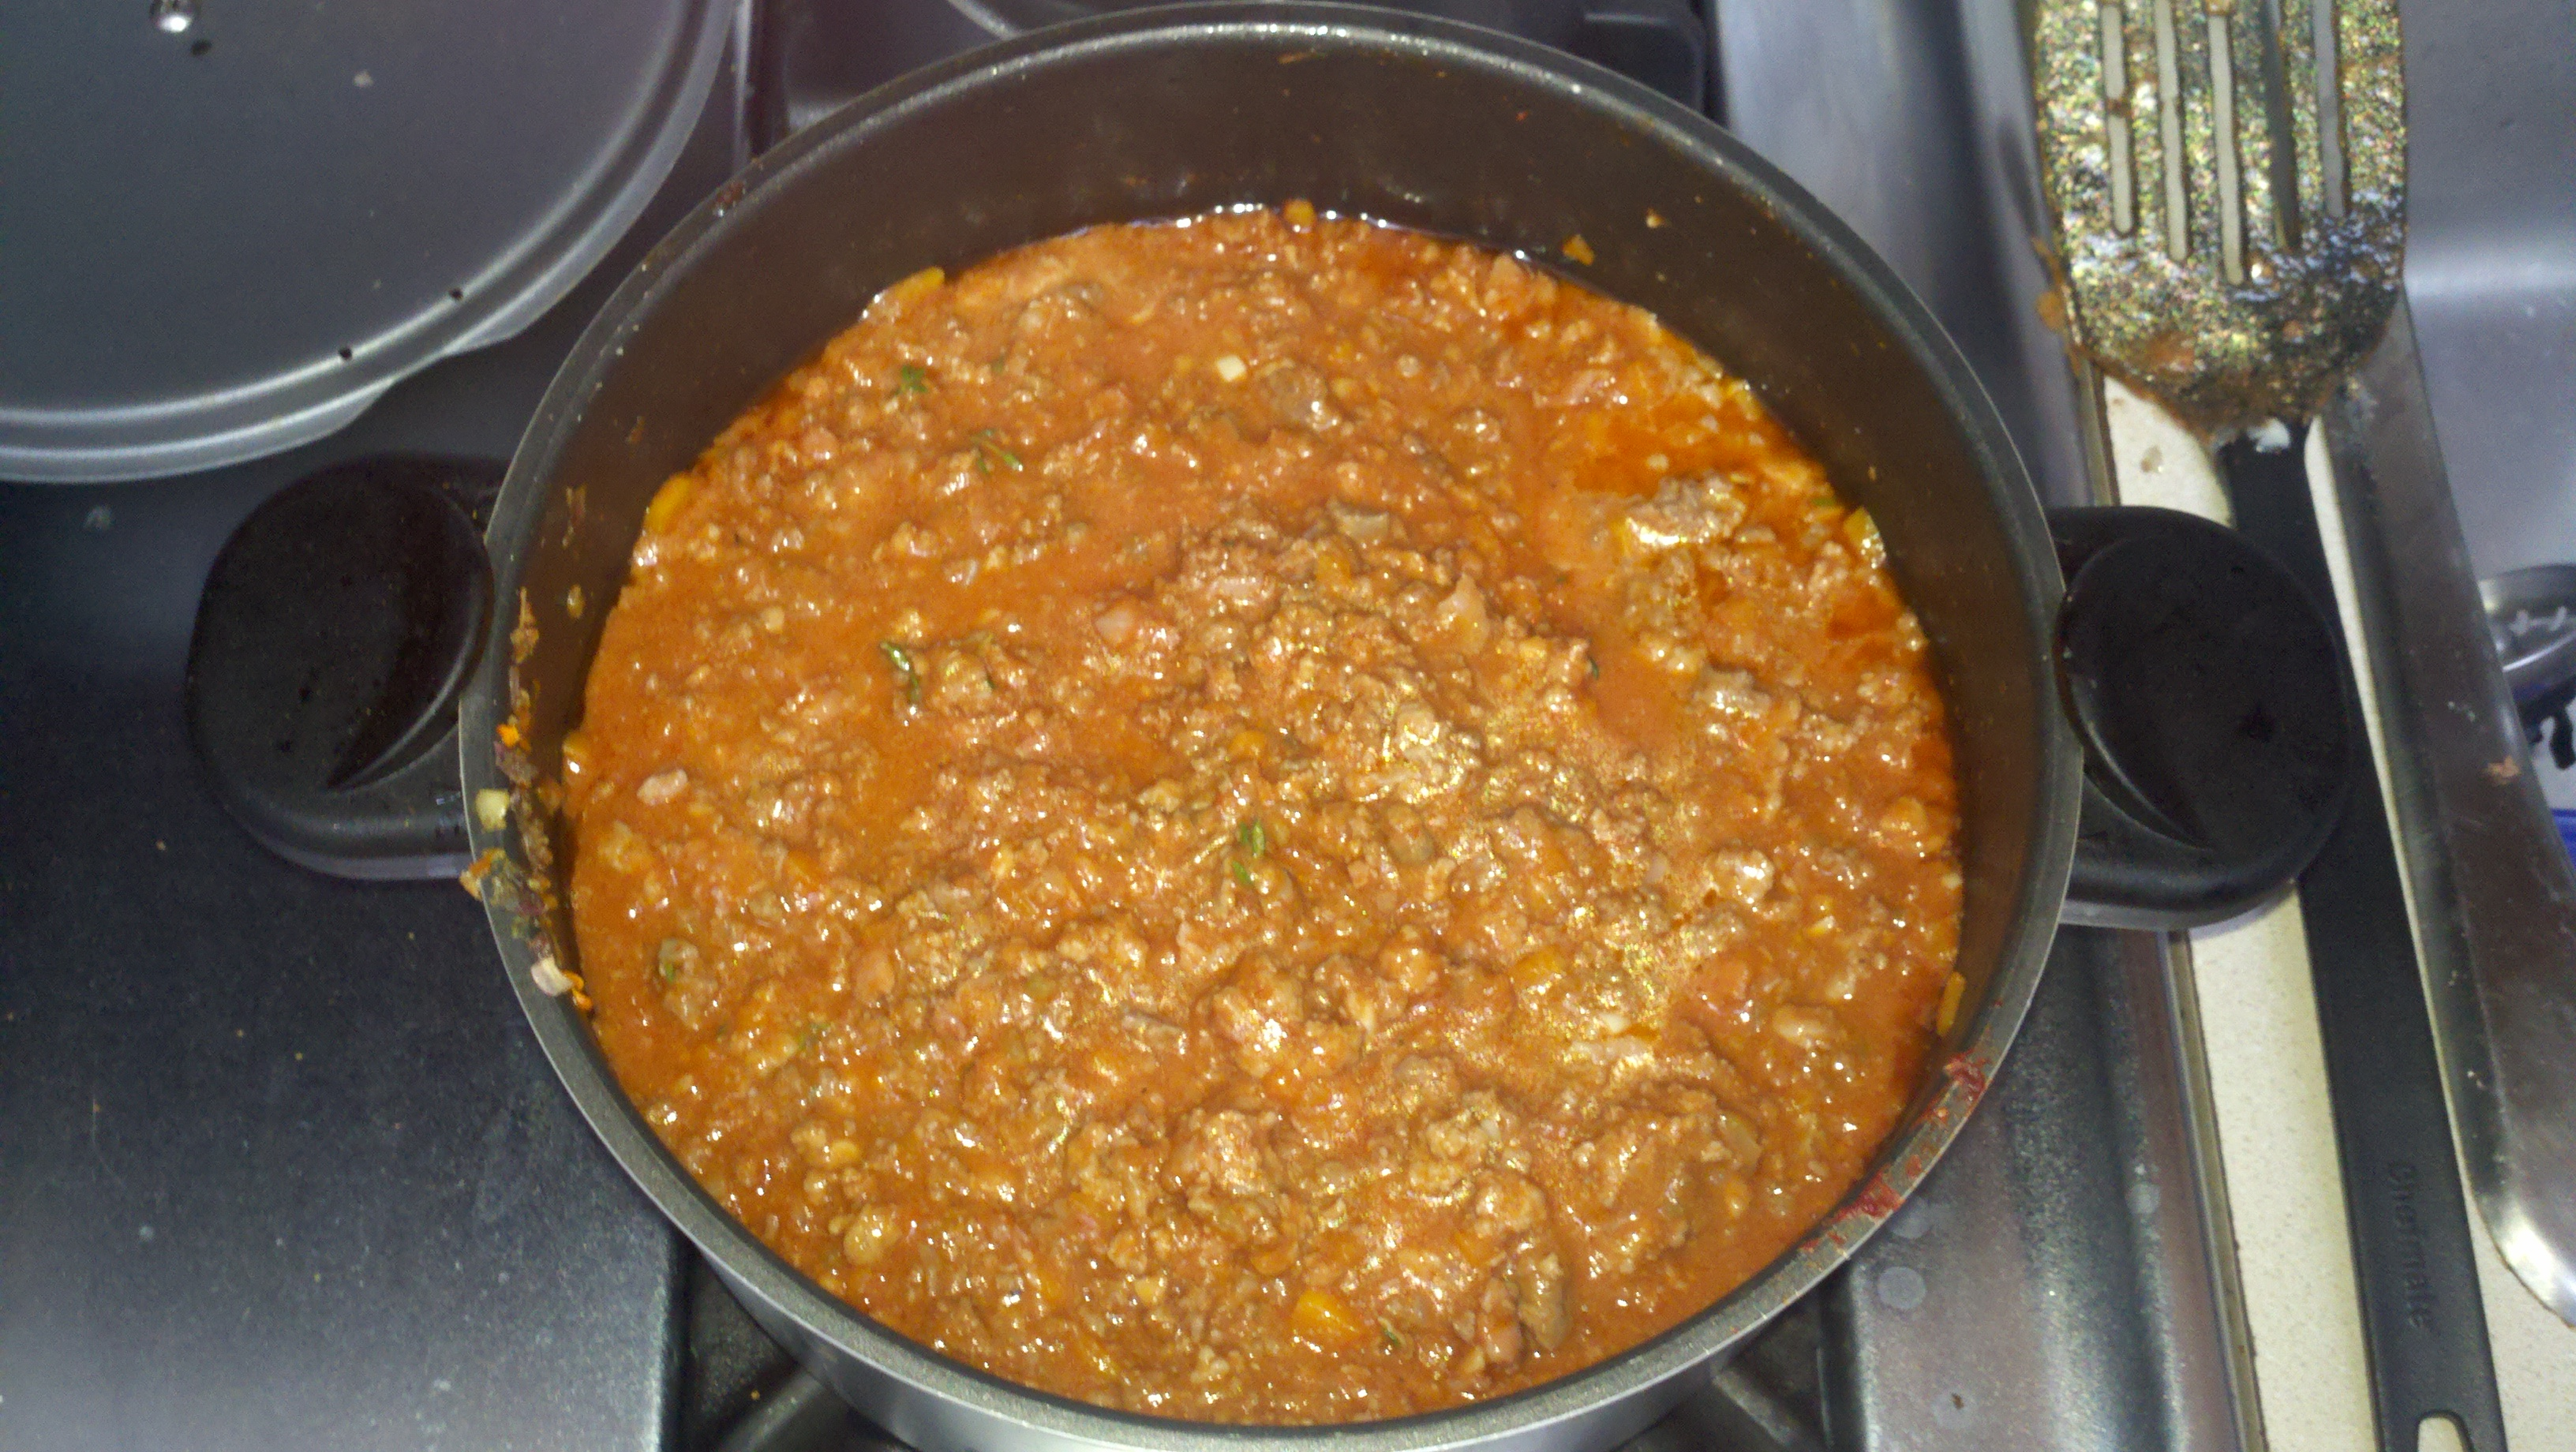 Ragu alla bolognese in the pot